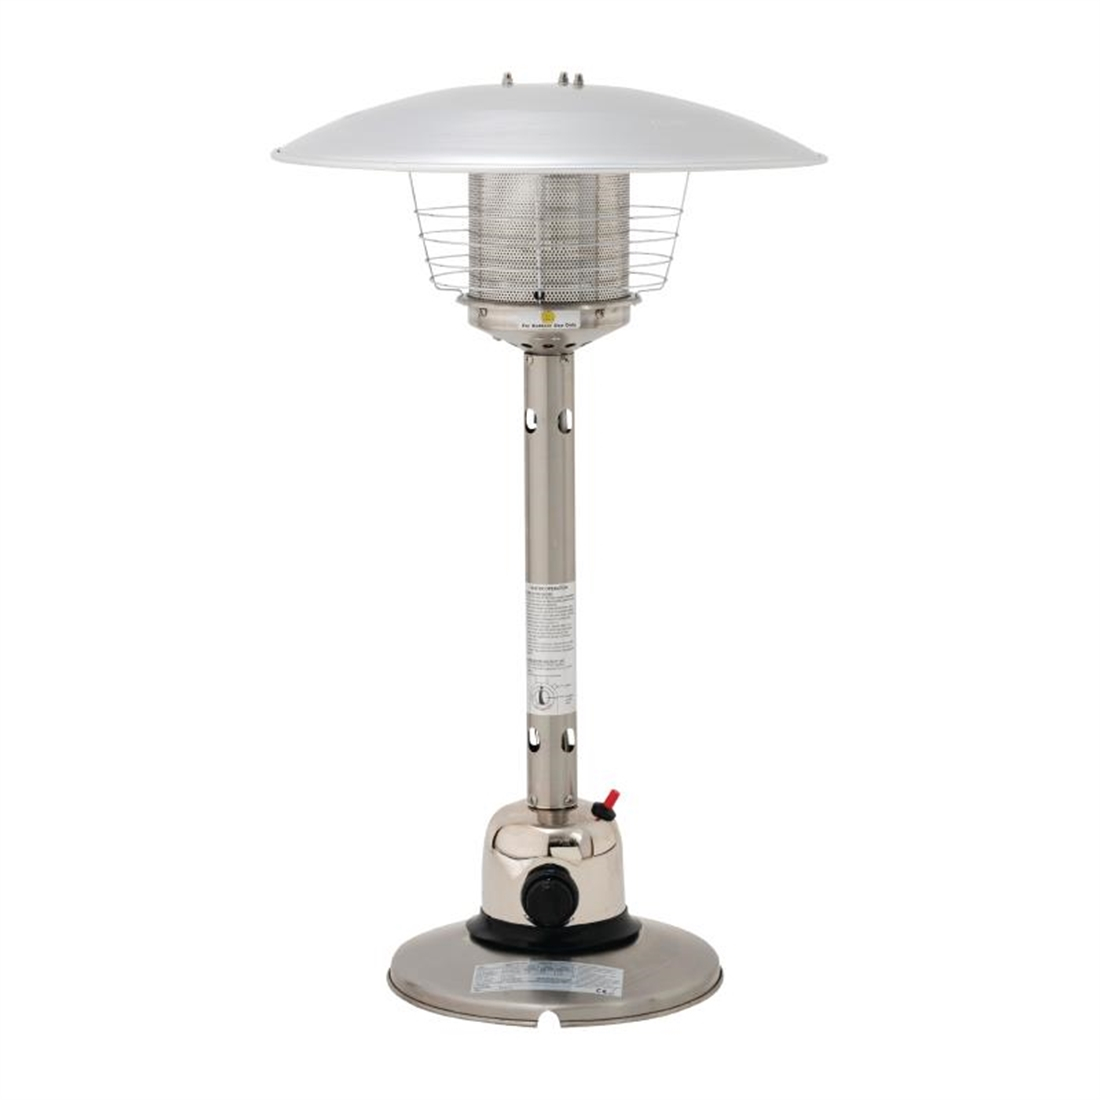 Lifestyle Sirocco Stainless Steel Table top Heater